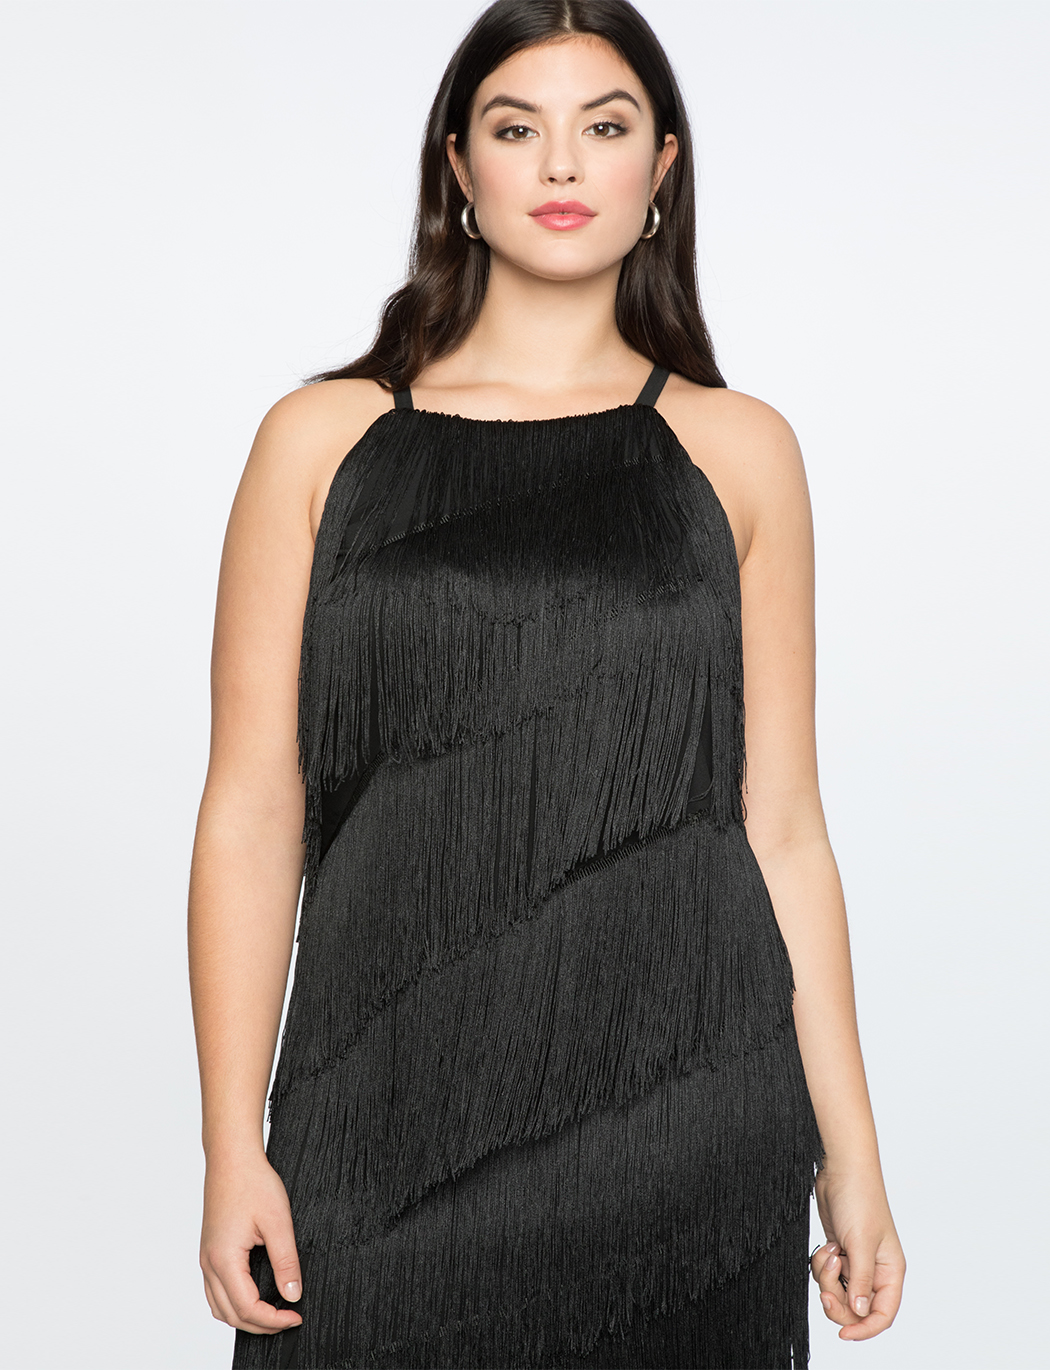 Fringe Easy Dress | Women\'s Plus Size Dresses | ELOQUII